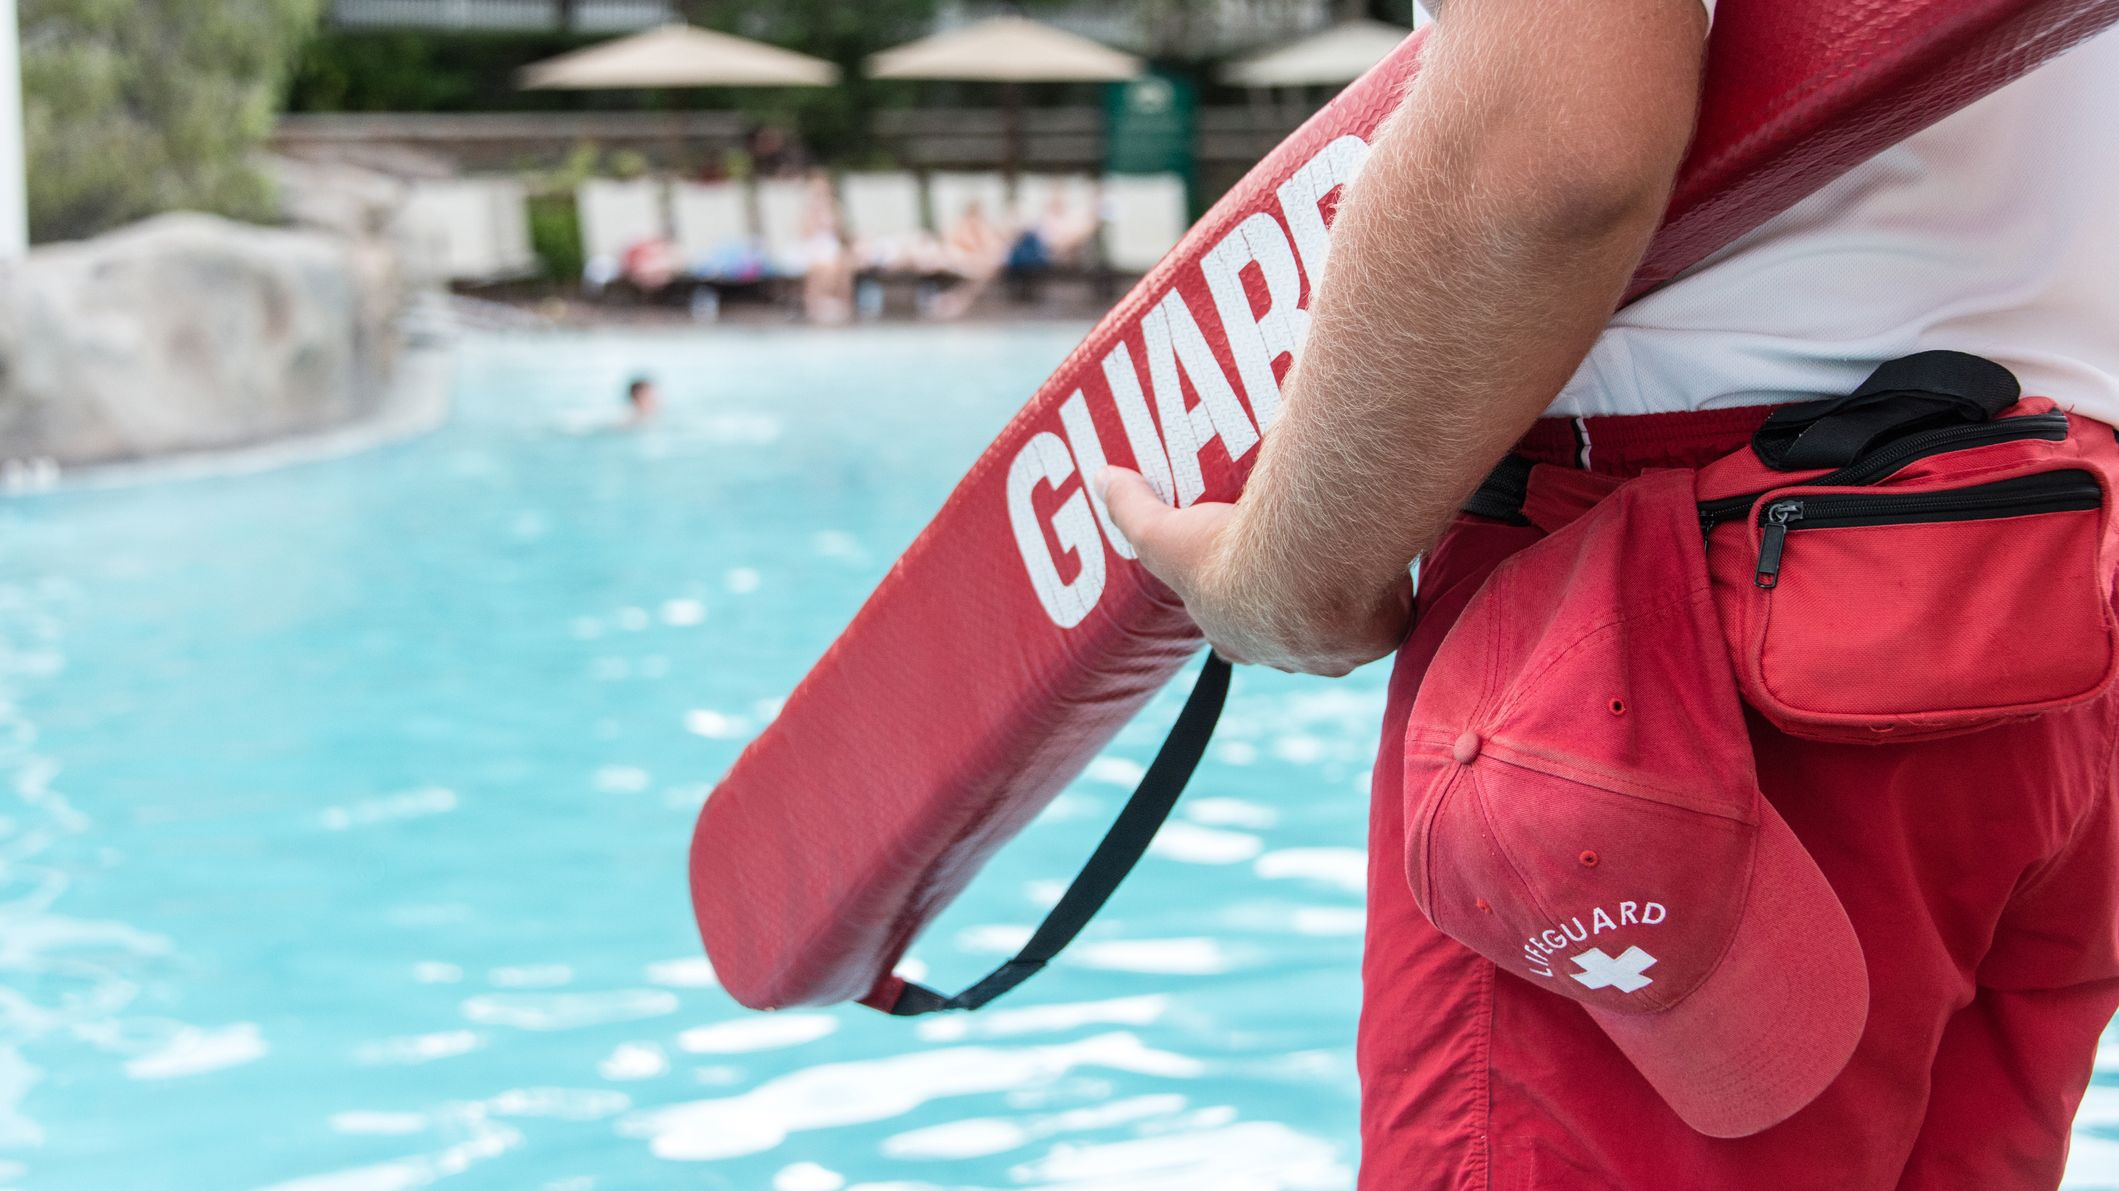 15 Behind-the-Scenes Secrets of Pool Lifeguards